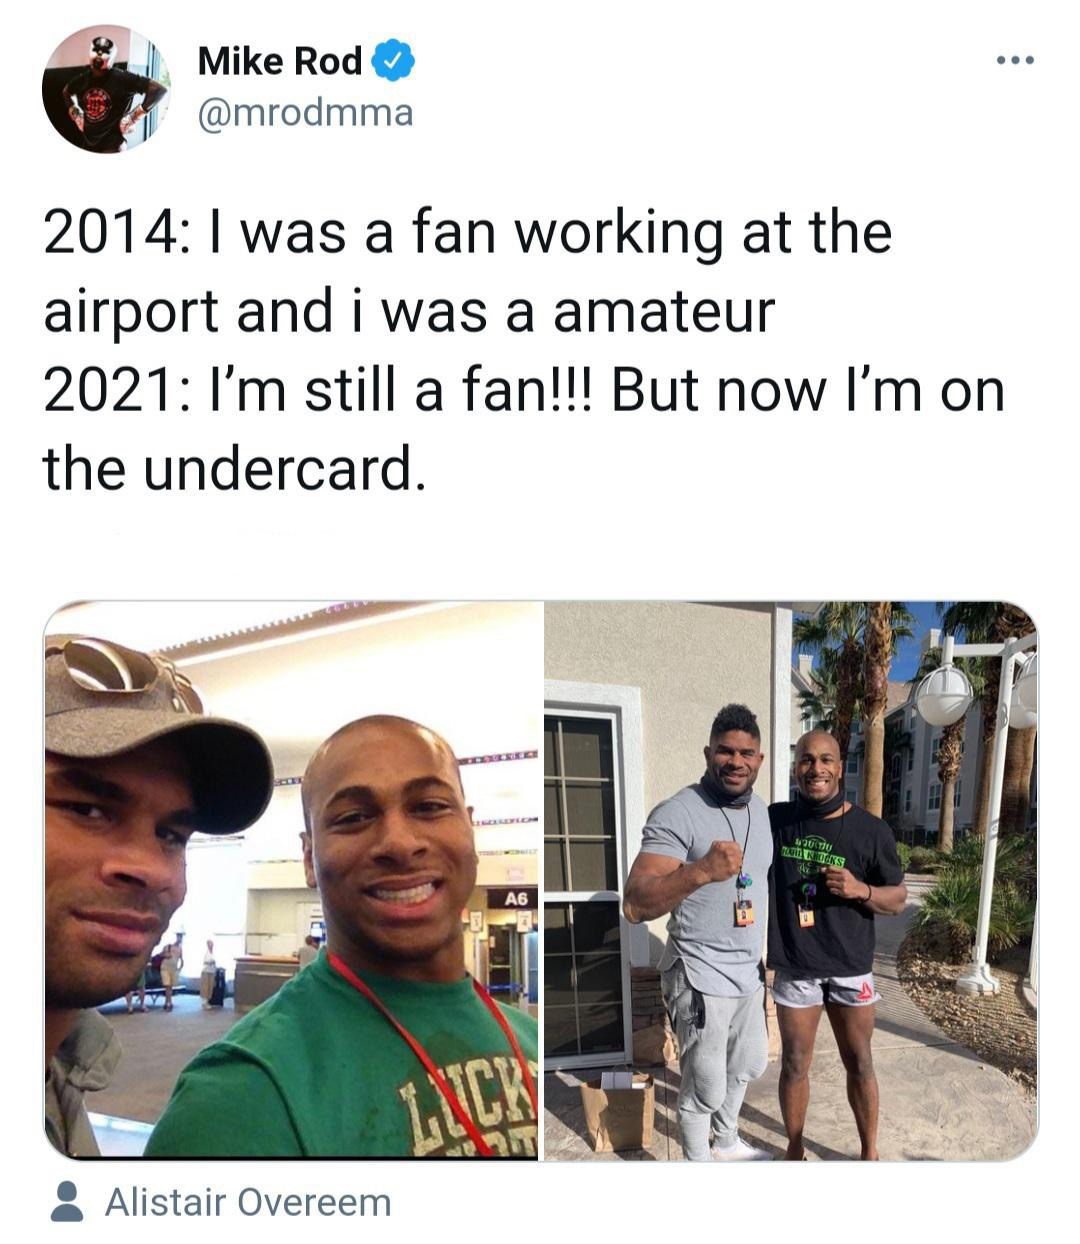 [Image] MMA fighter Mike Rodriguez gives an update 7 years later